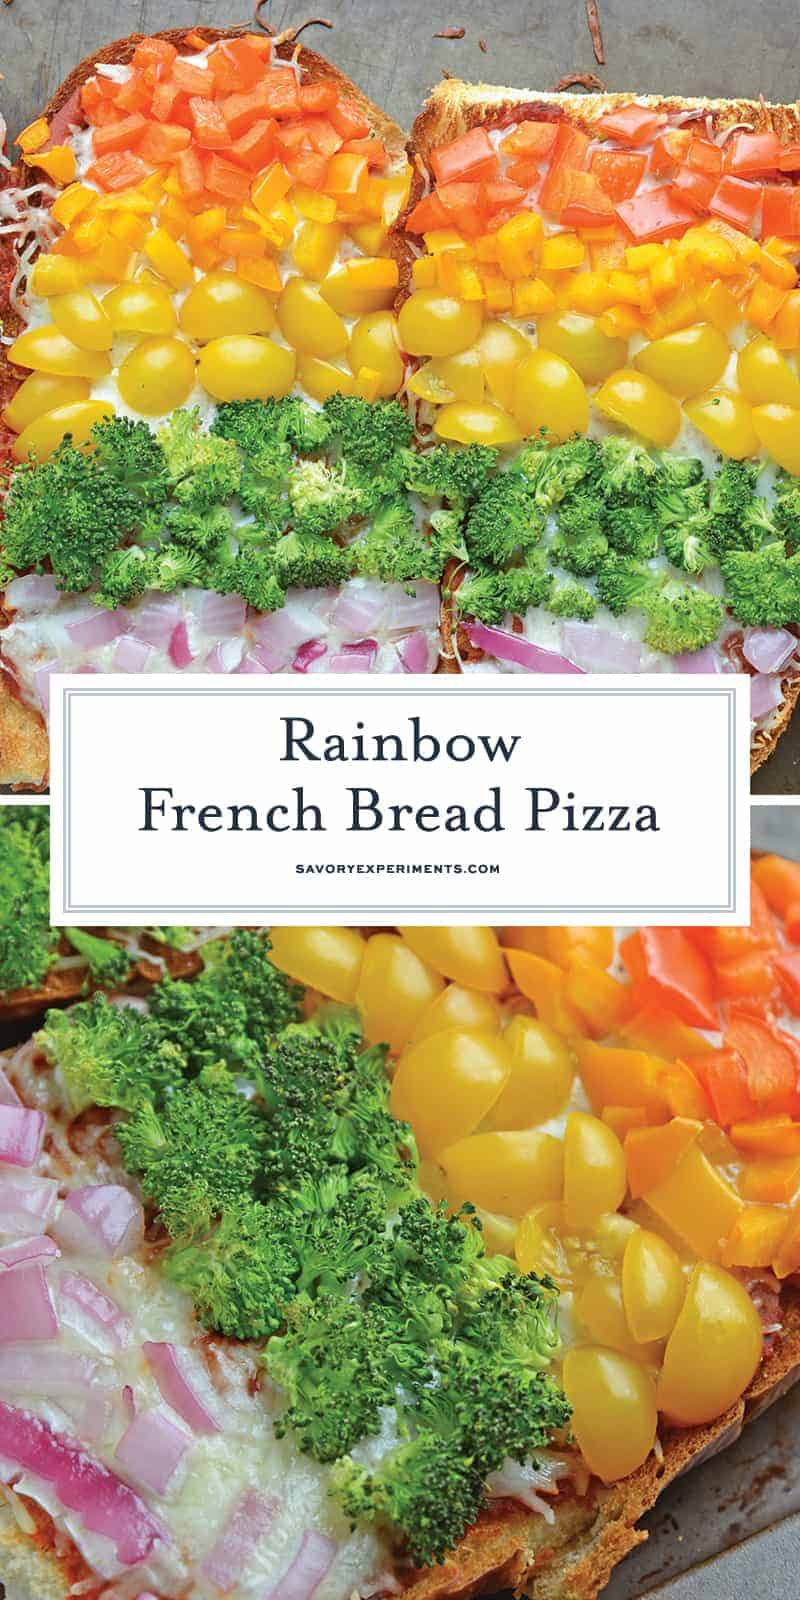 Rainbow French Bread Pizza for Pinterest